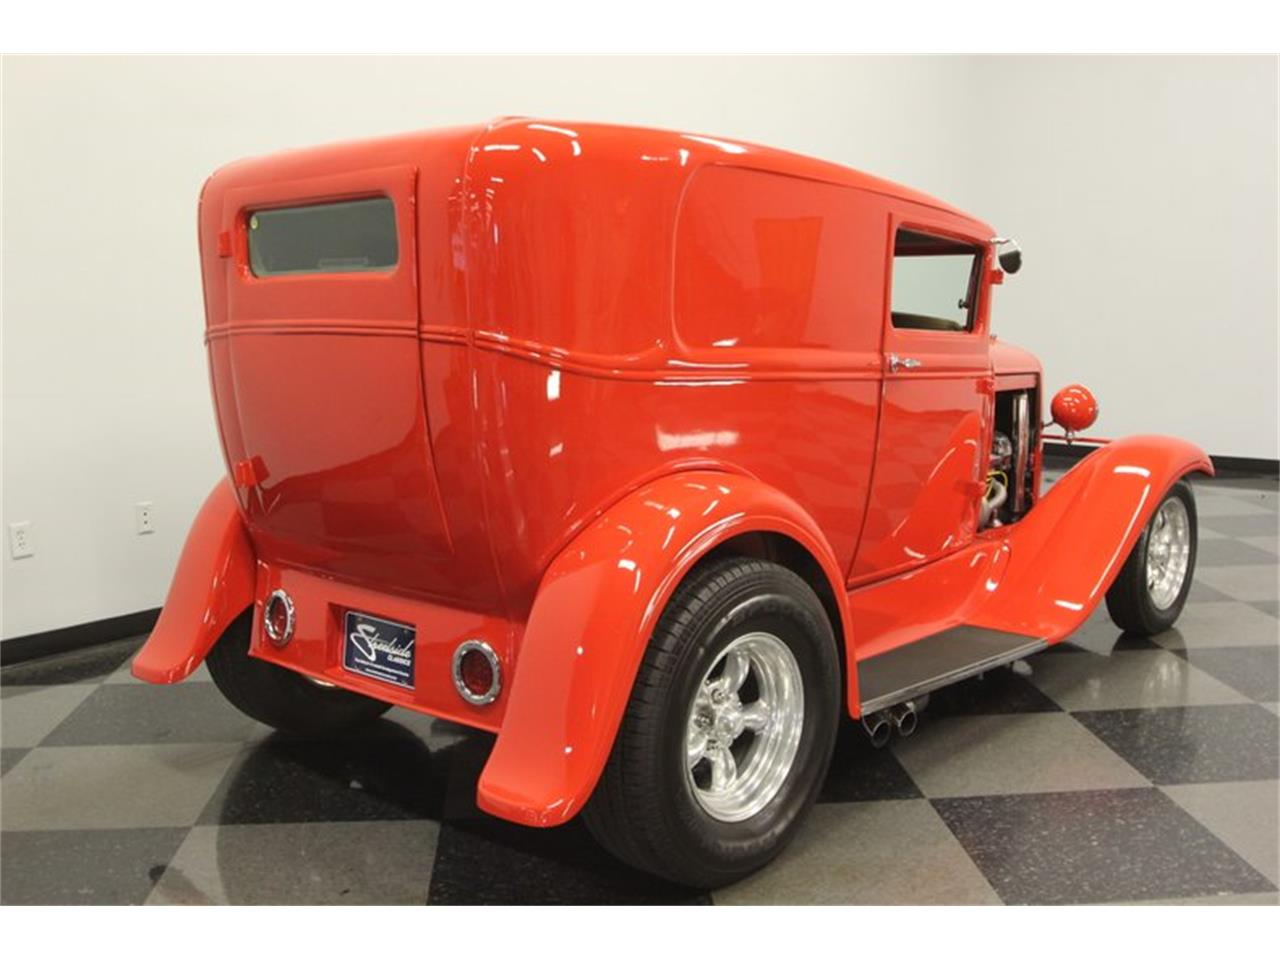 For Sale: 1931 Ford Sedan in Lutz, Florida